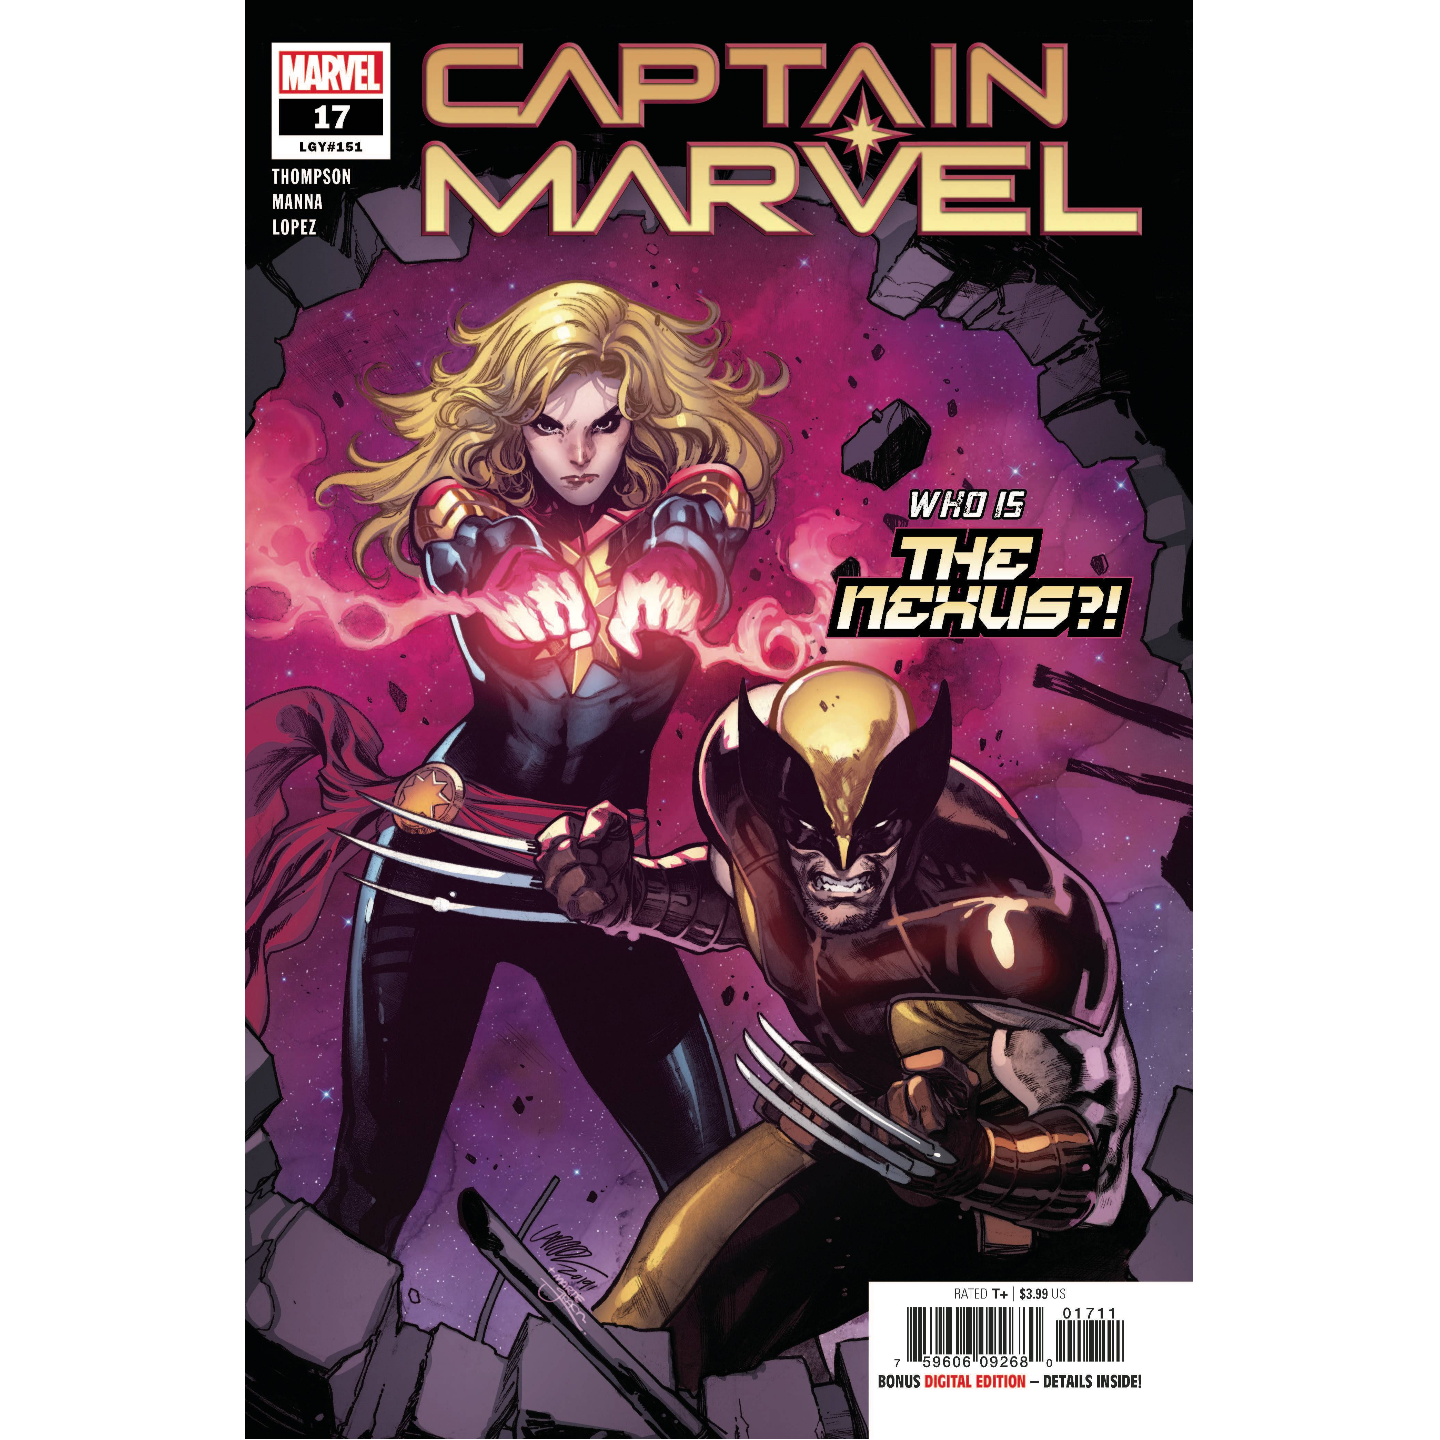 CAPTAIN MARVEL 17